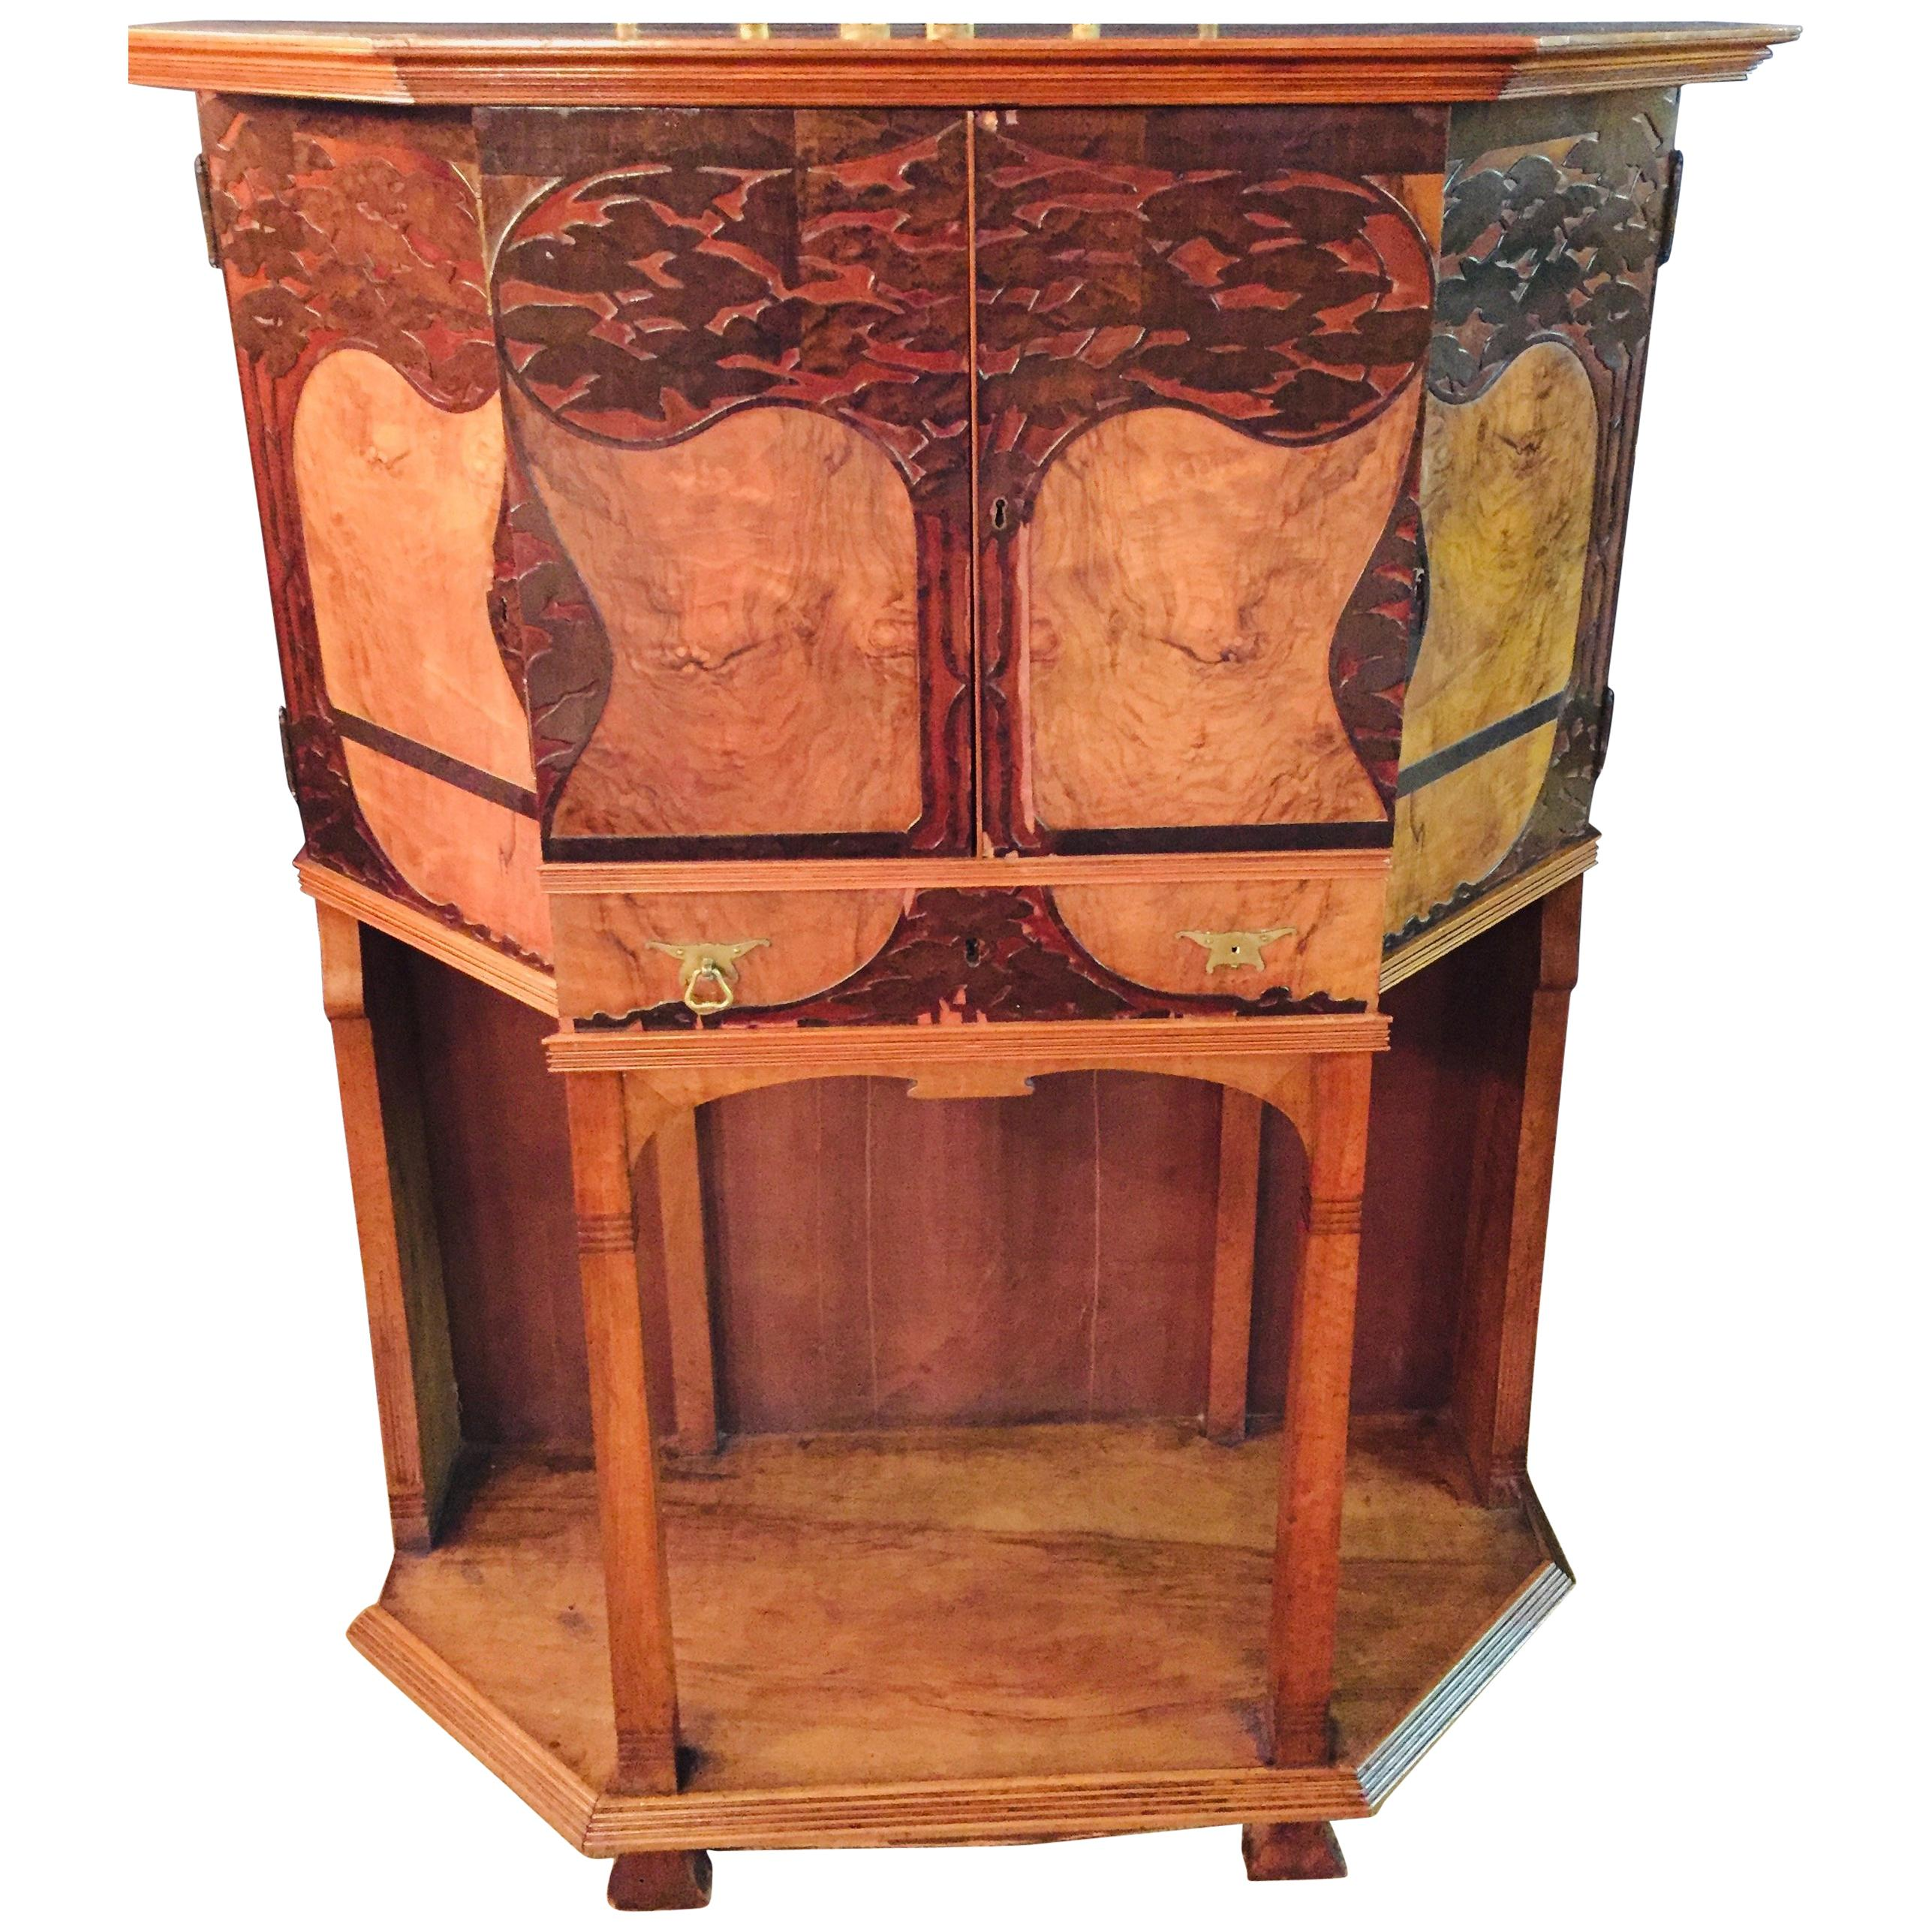 Credenza Sideboard Art Nouveau Art Deco Buffet Rare to Find France